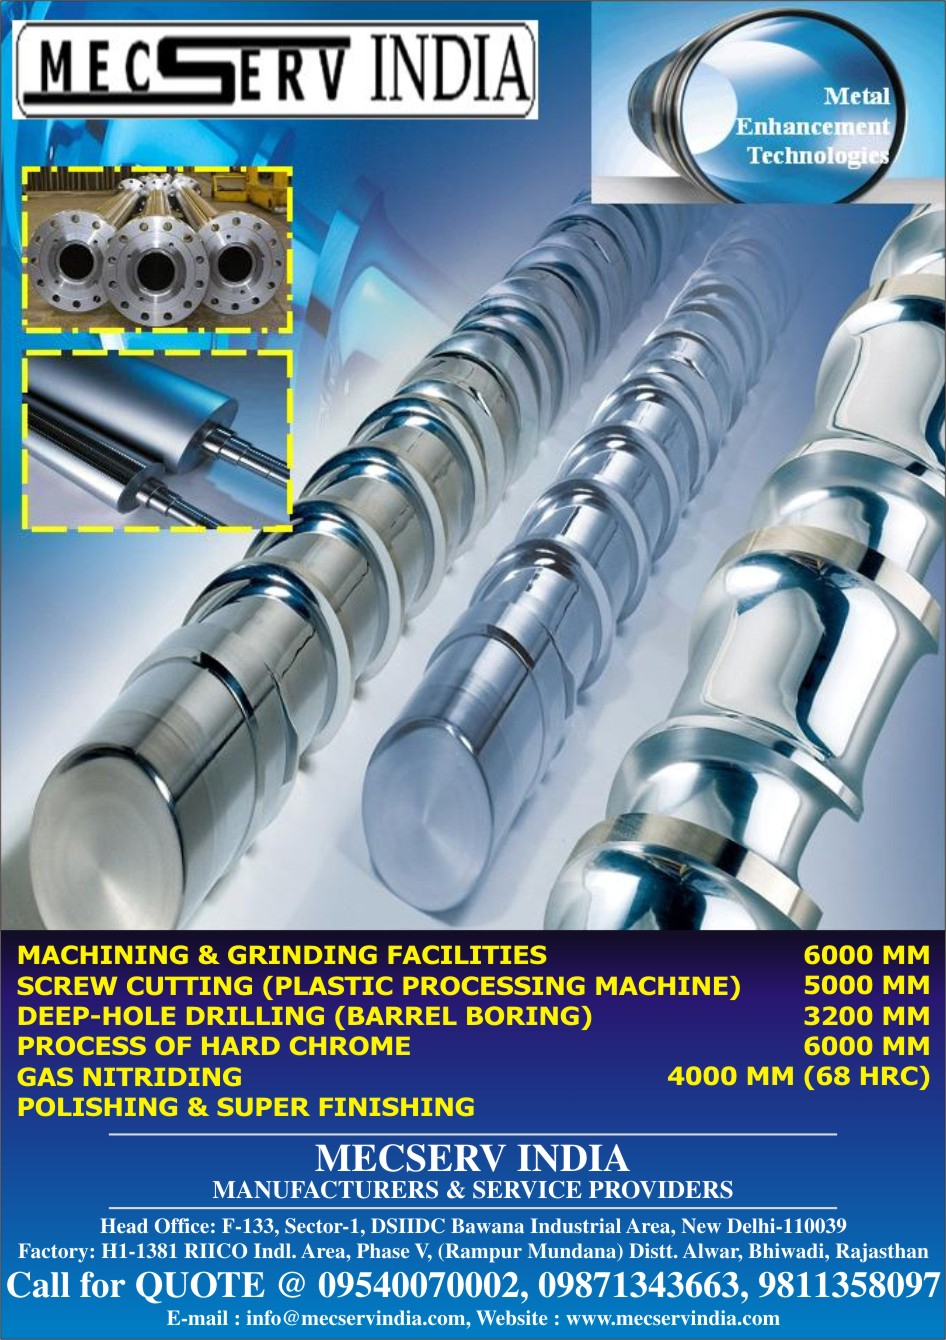 PLASTIC PROCESSING Machine, SCREWs and BARRELs,  DIES,  MACHINEs TIE-BARS and SHAFTs, HYDRAULIC PISTONs, CYLINDERS, Screw Cutting Machine, 